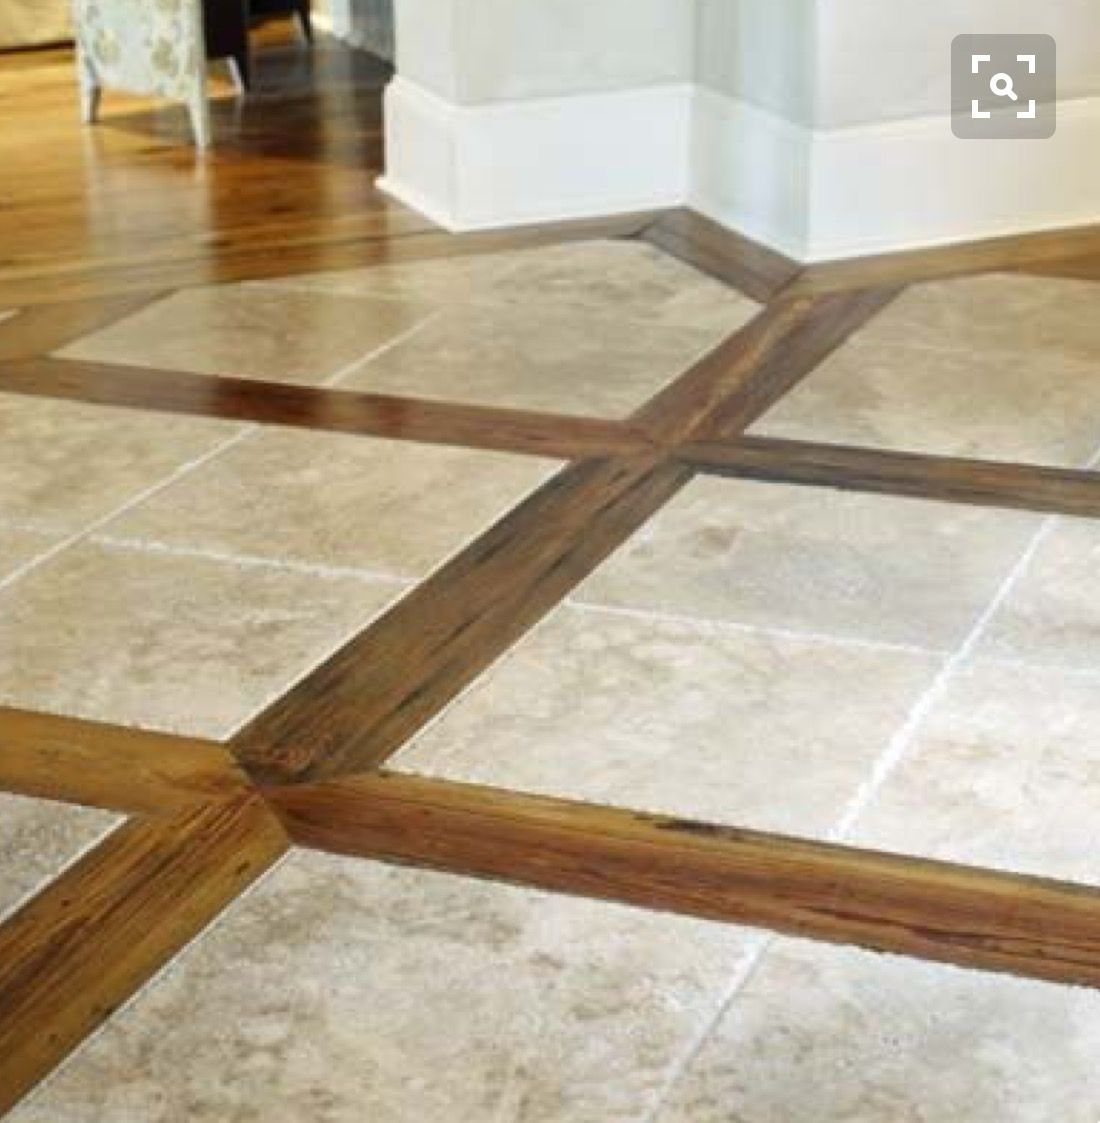 Pin by leslee meyers ortega on mikes entry floor pinterest tile and wood combinationce way to tie in hardwoods with tile in the wet areas dailygadgetfo Choice Image